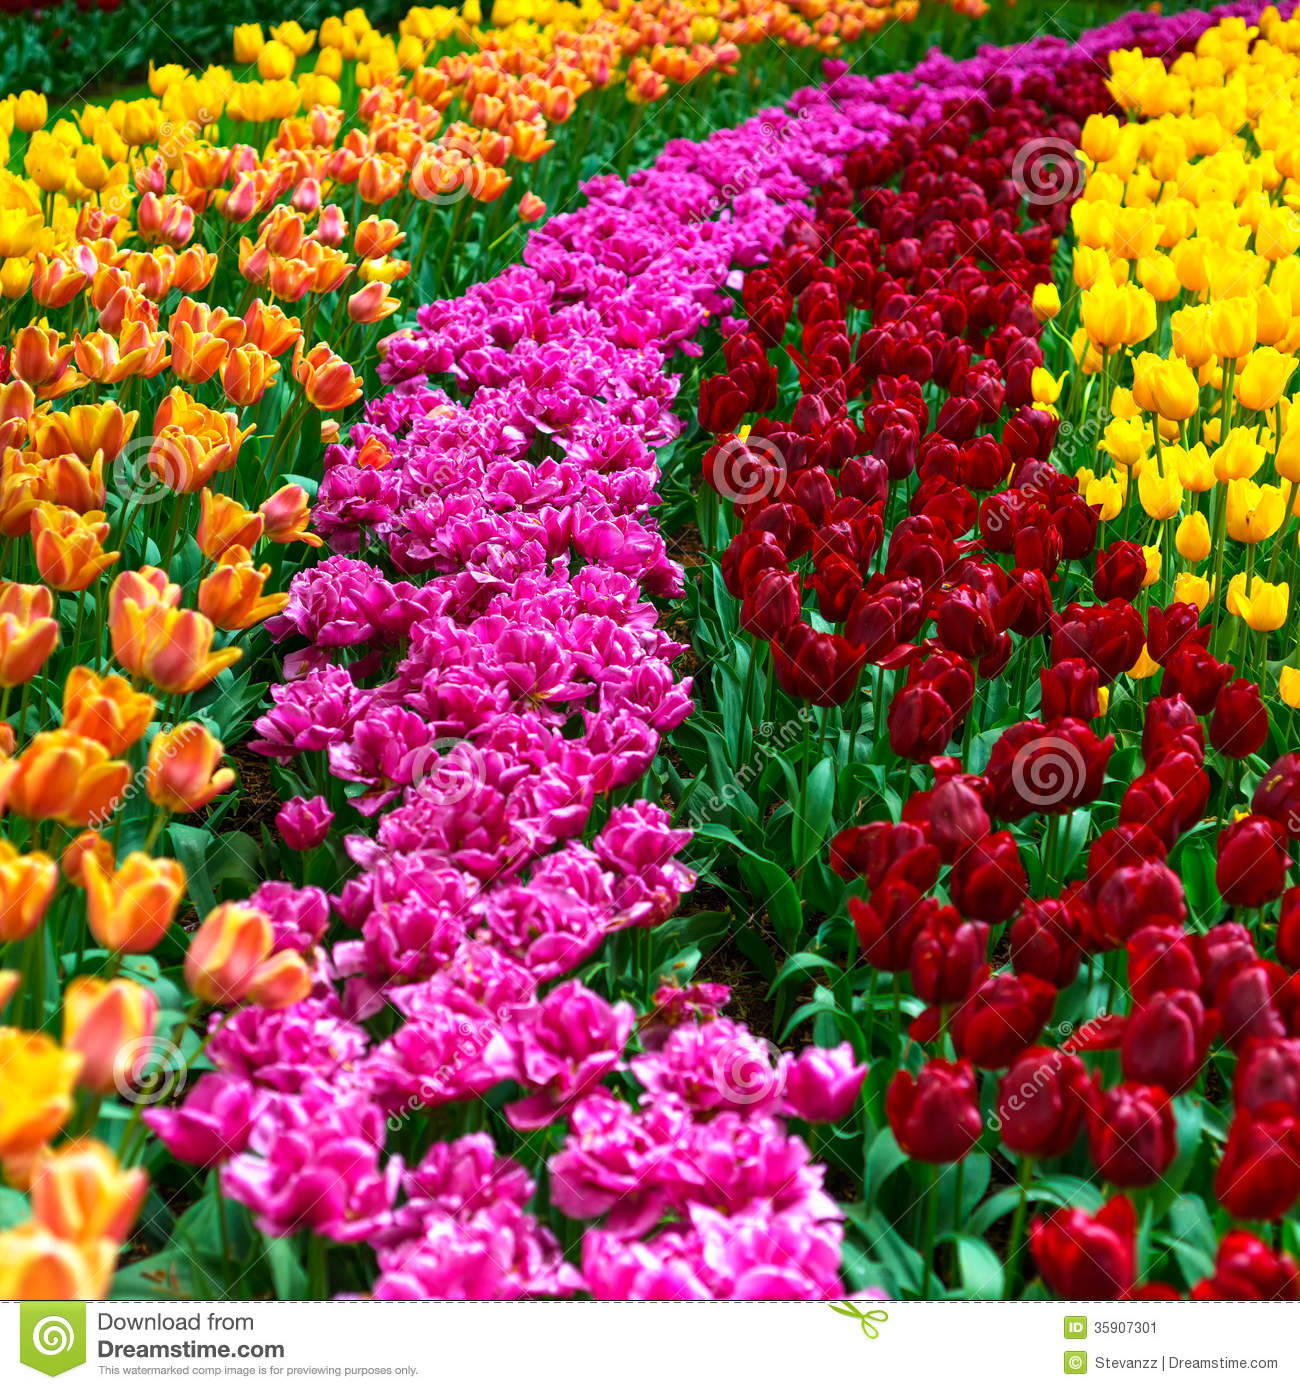 Garden Design With Tulip Flowers Garden In Spring Background Or Pattern  Stock Image With Landscaping Design